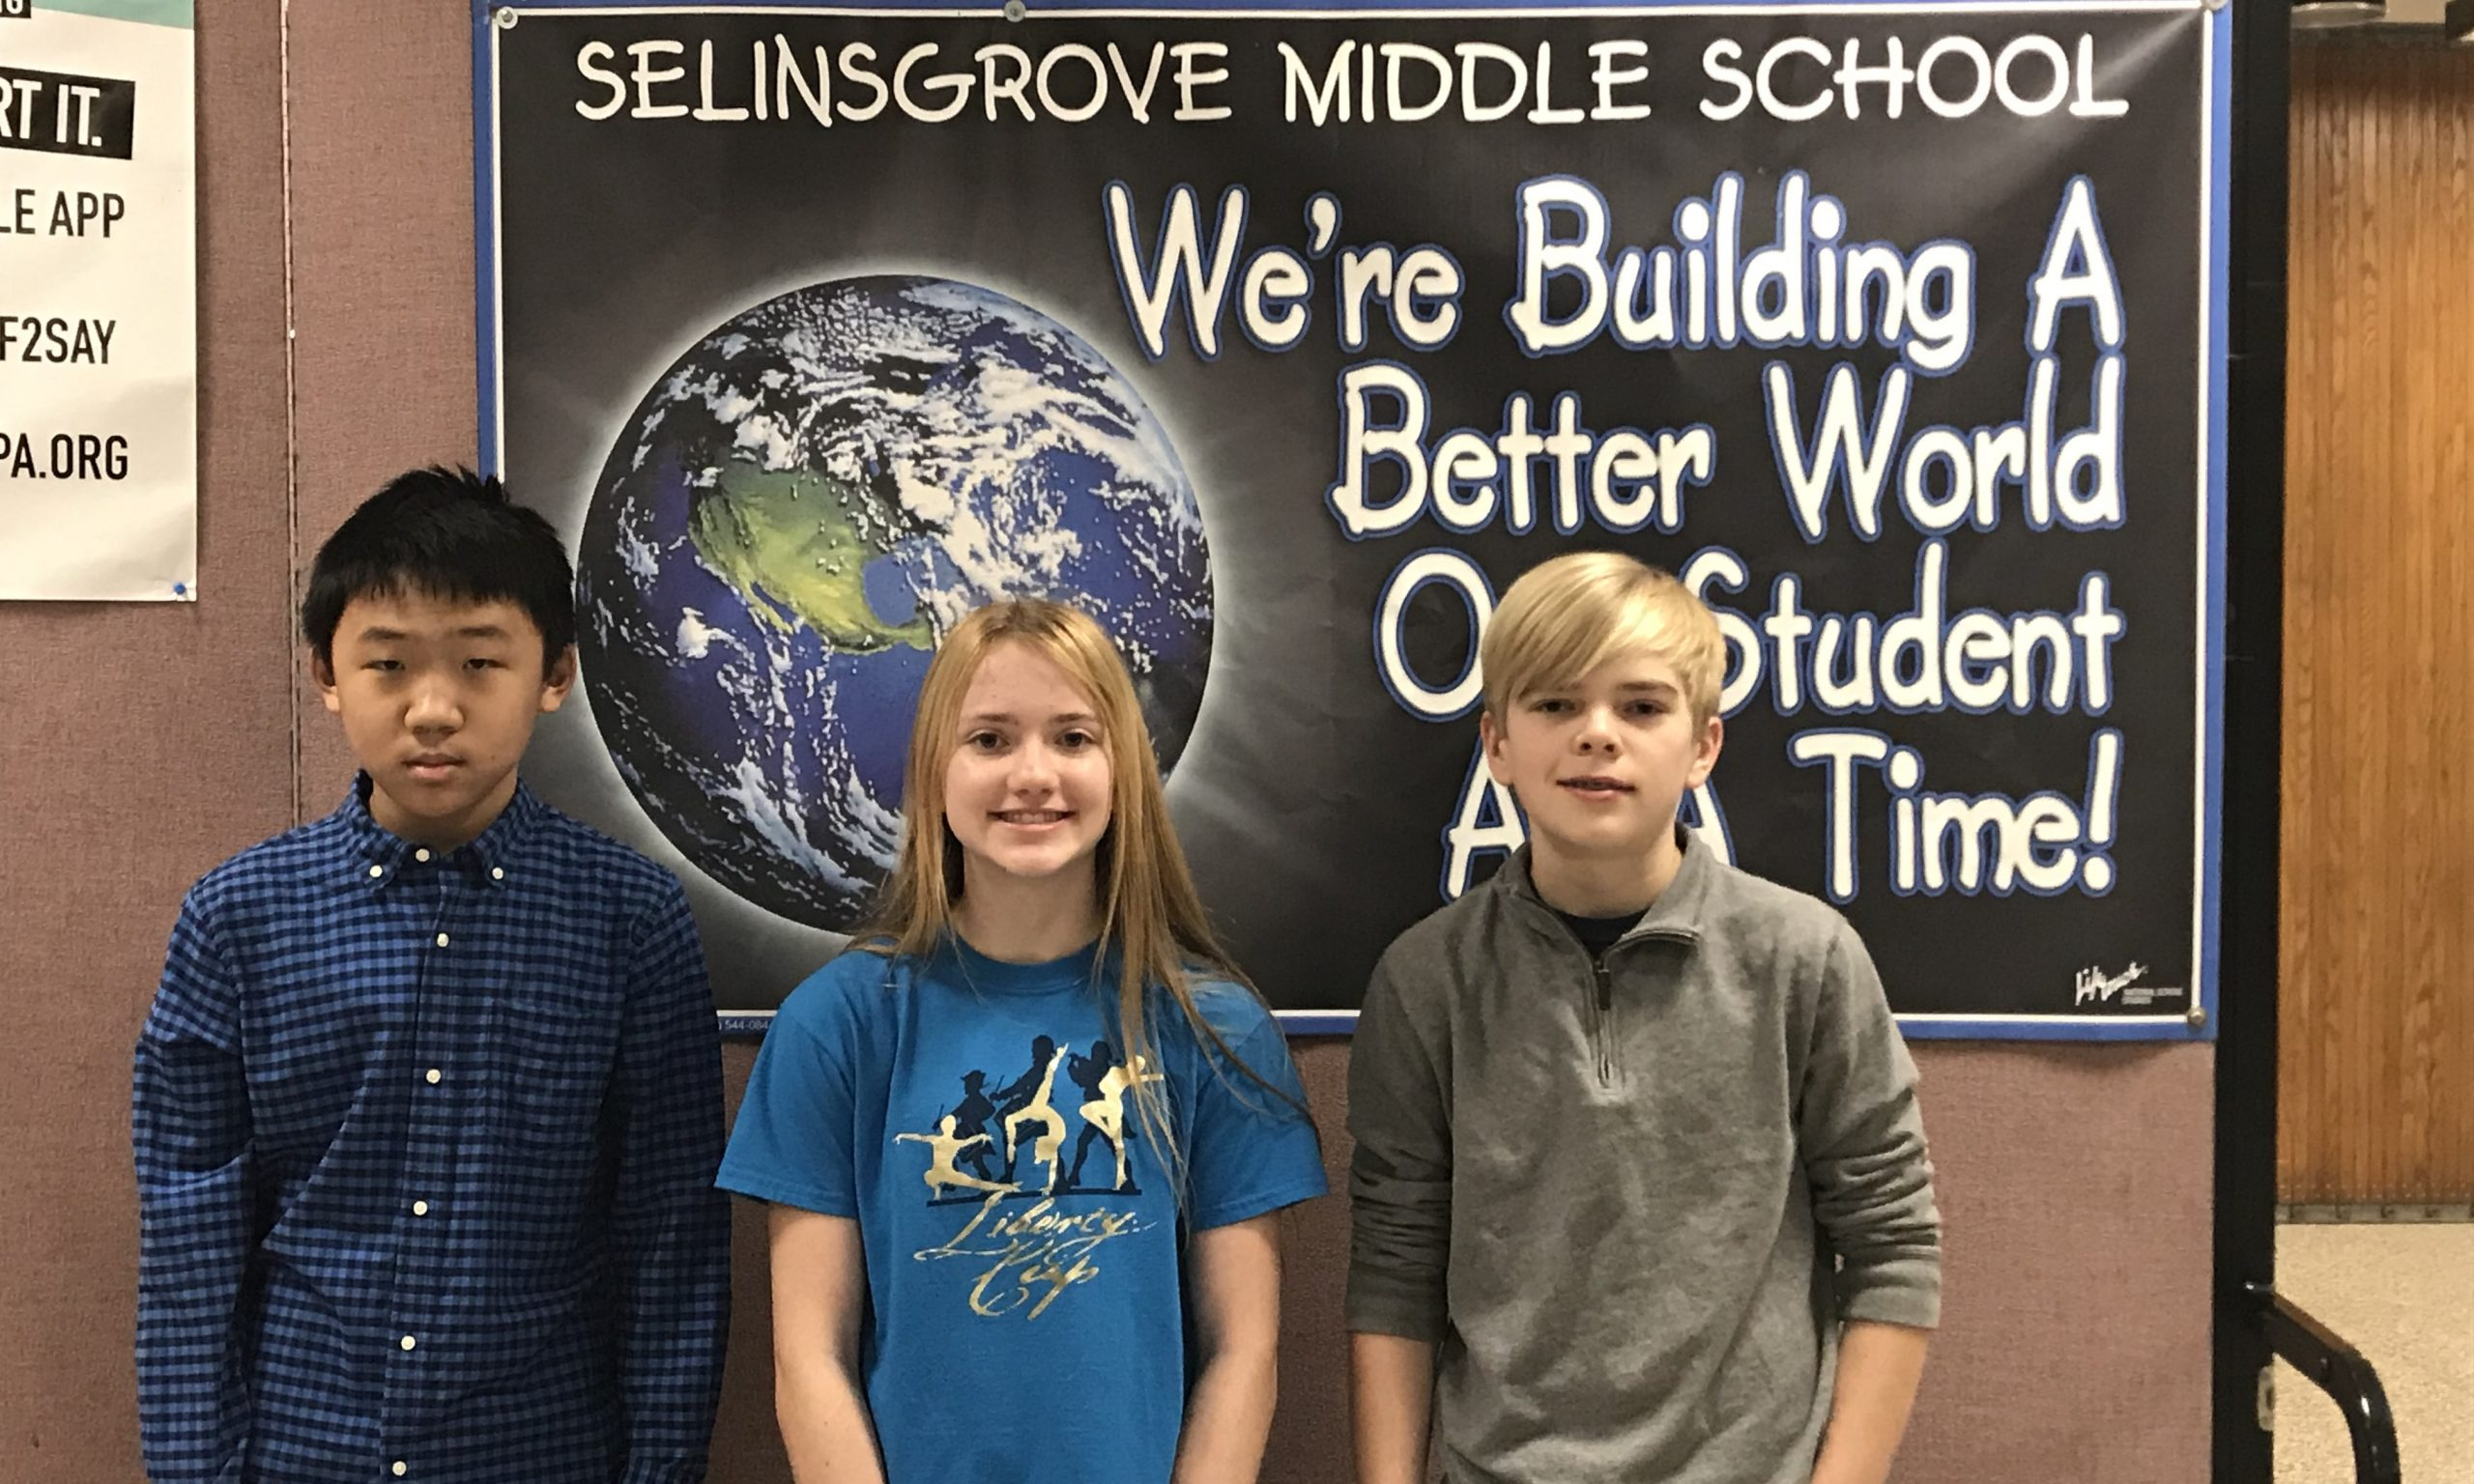 Rui Wang (Grade 7), Kendrina Keller (Grade 7) and Emerson Zobal (Grade 8) have advanced to the WITF Grand Championship Oral Spelling Bee in Harrisburg